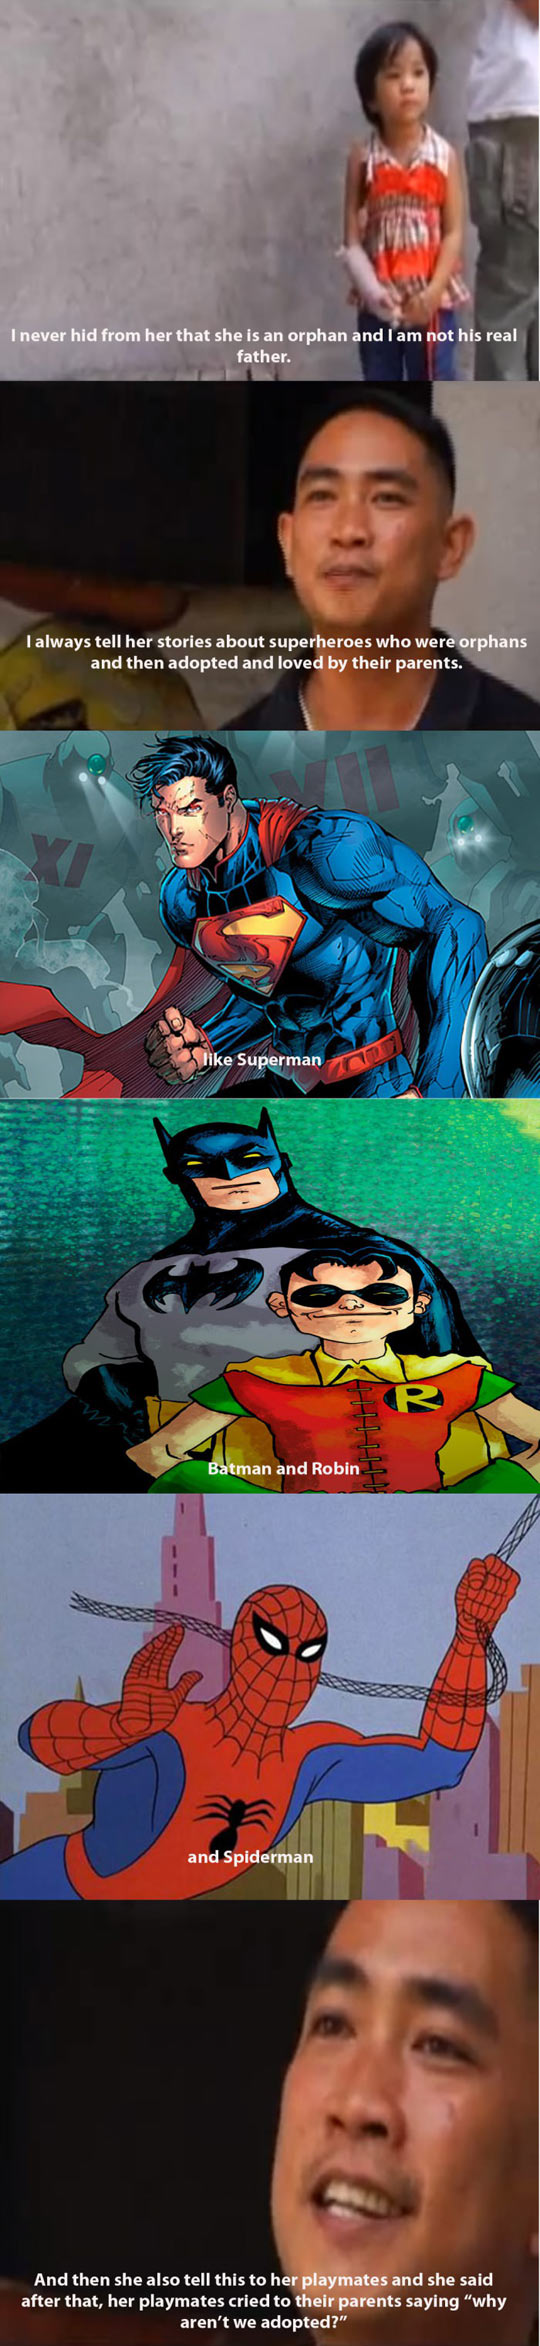 funny-orphan-superheroes-father-adopted